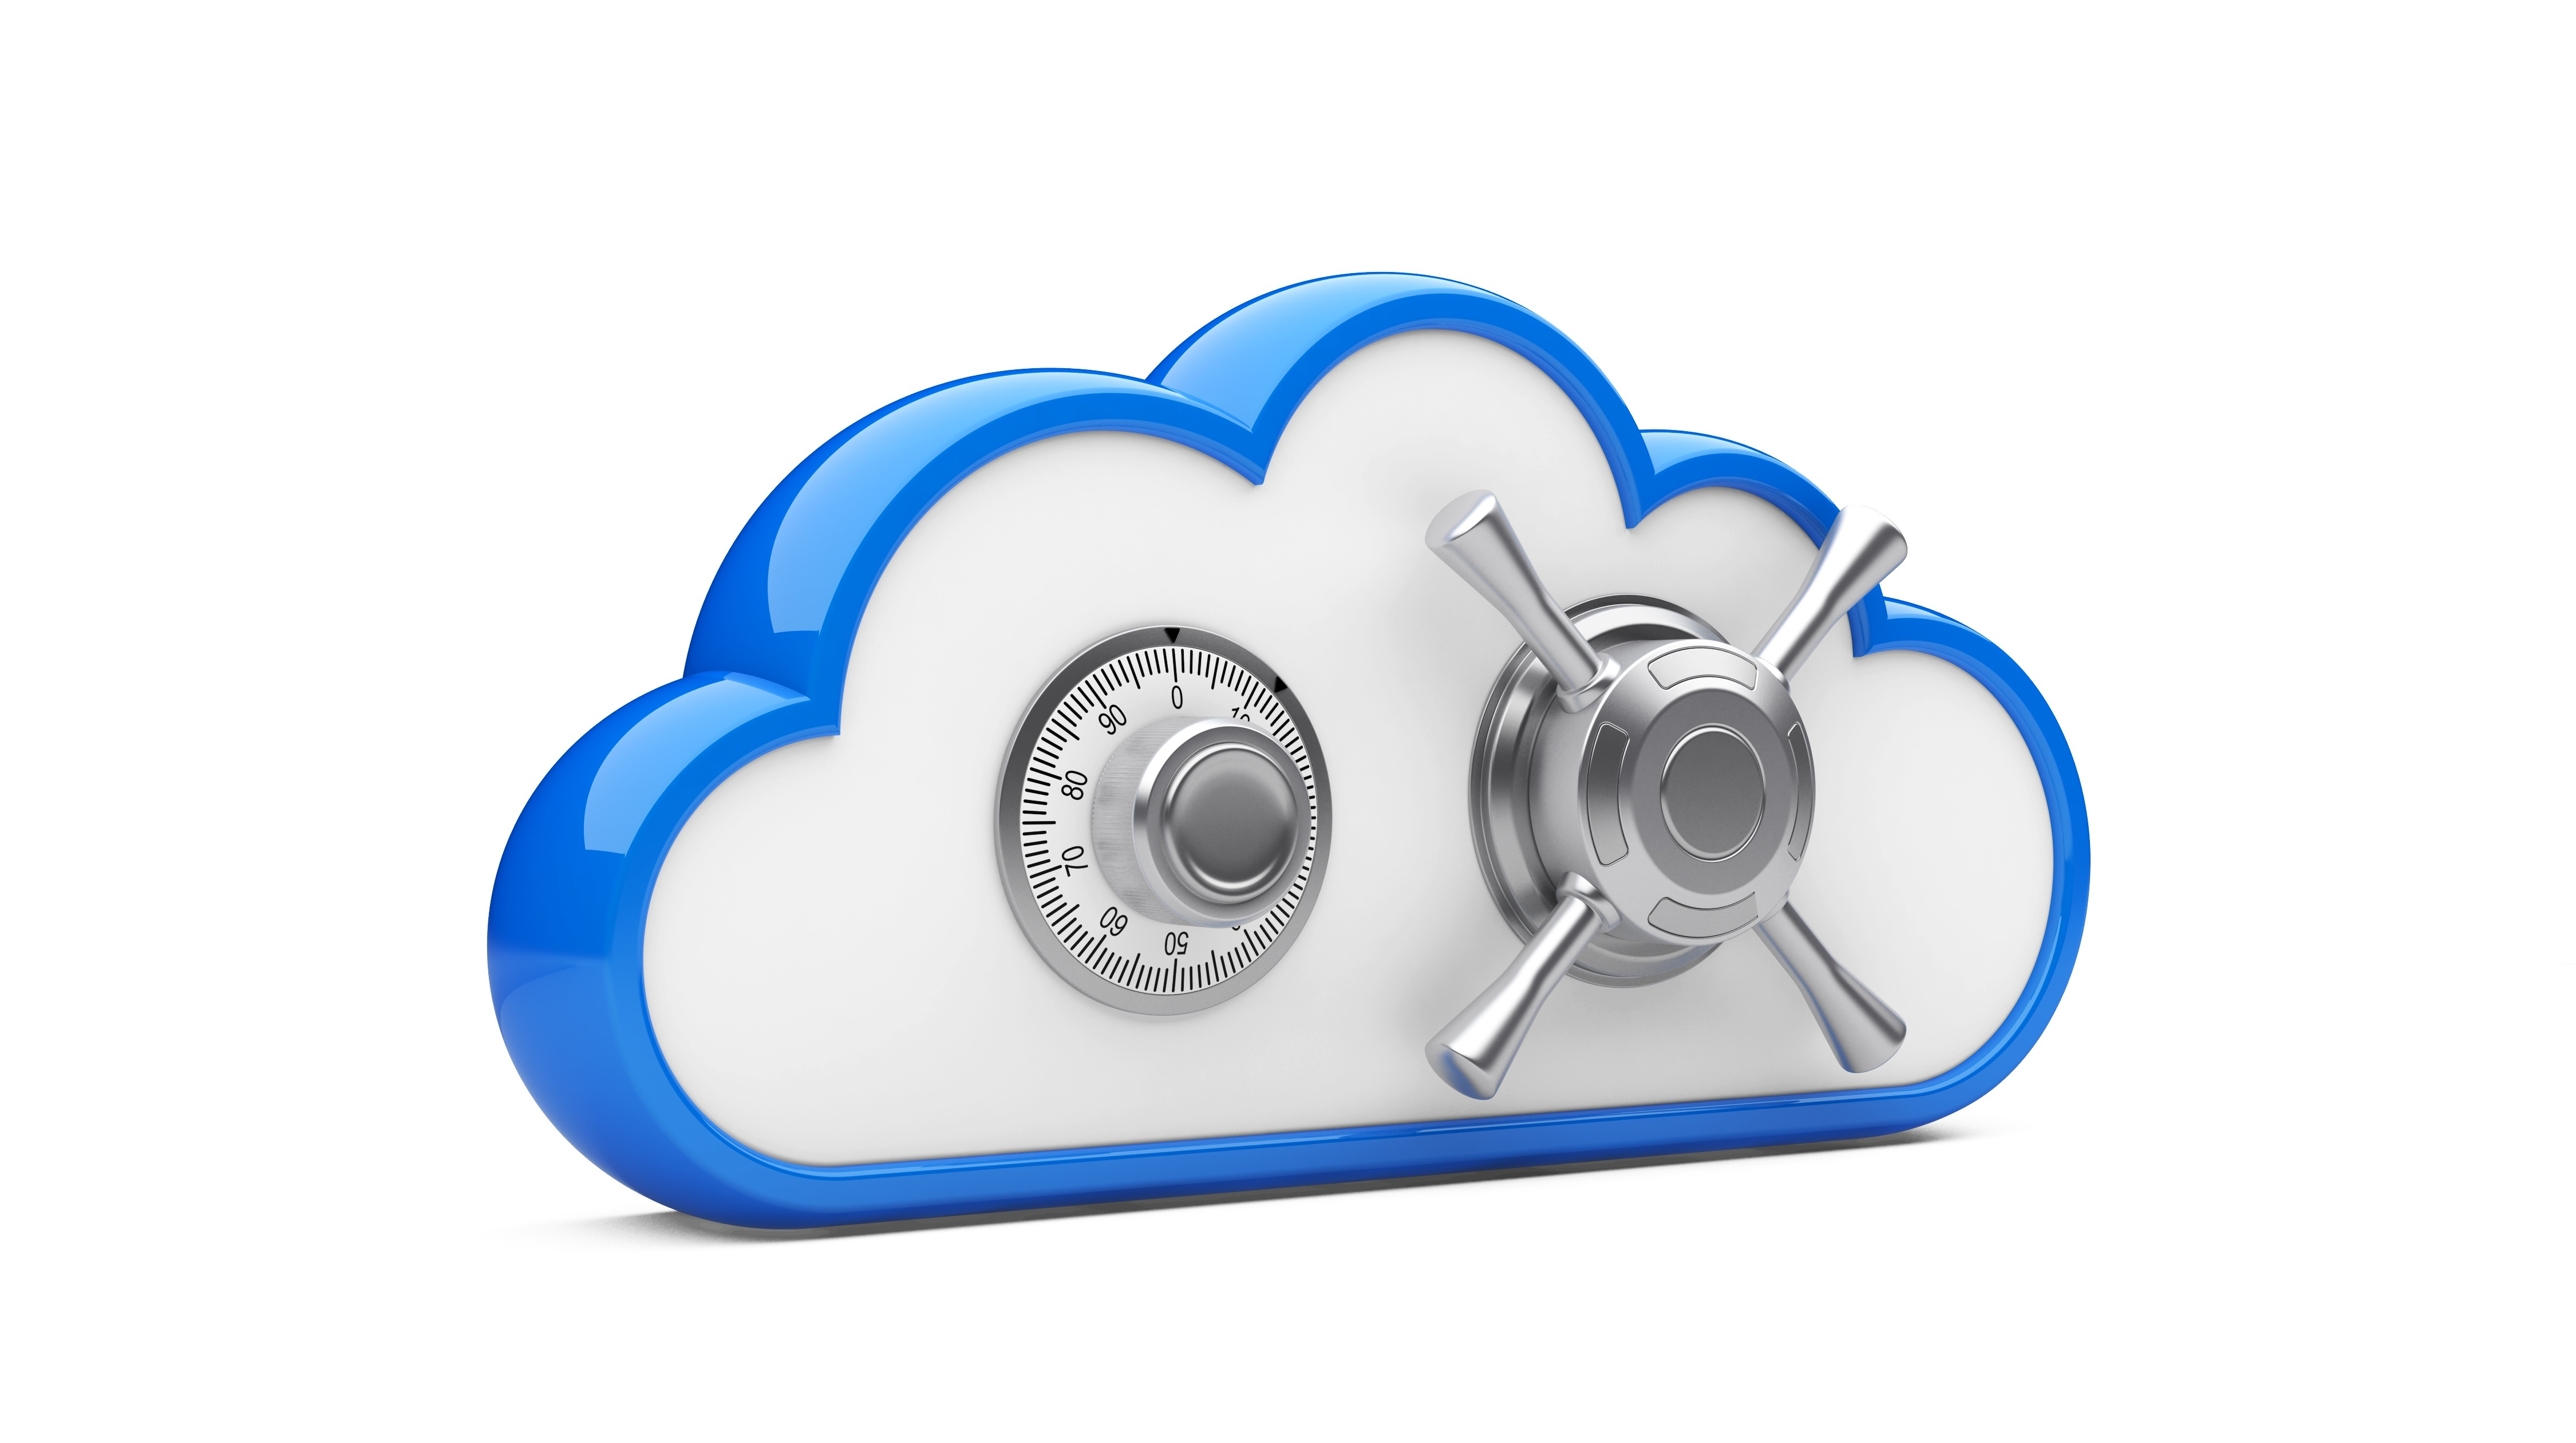 Cloud Drive Storage Safety